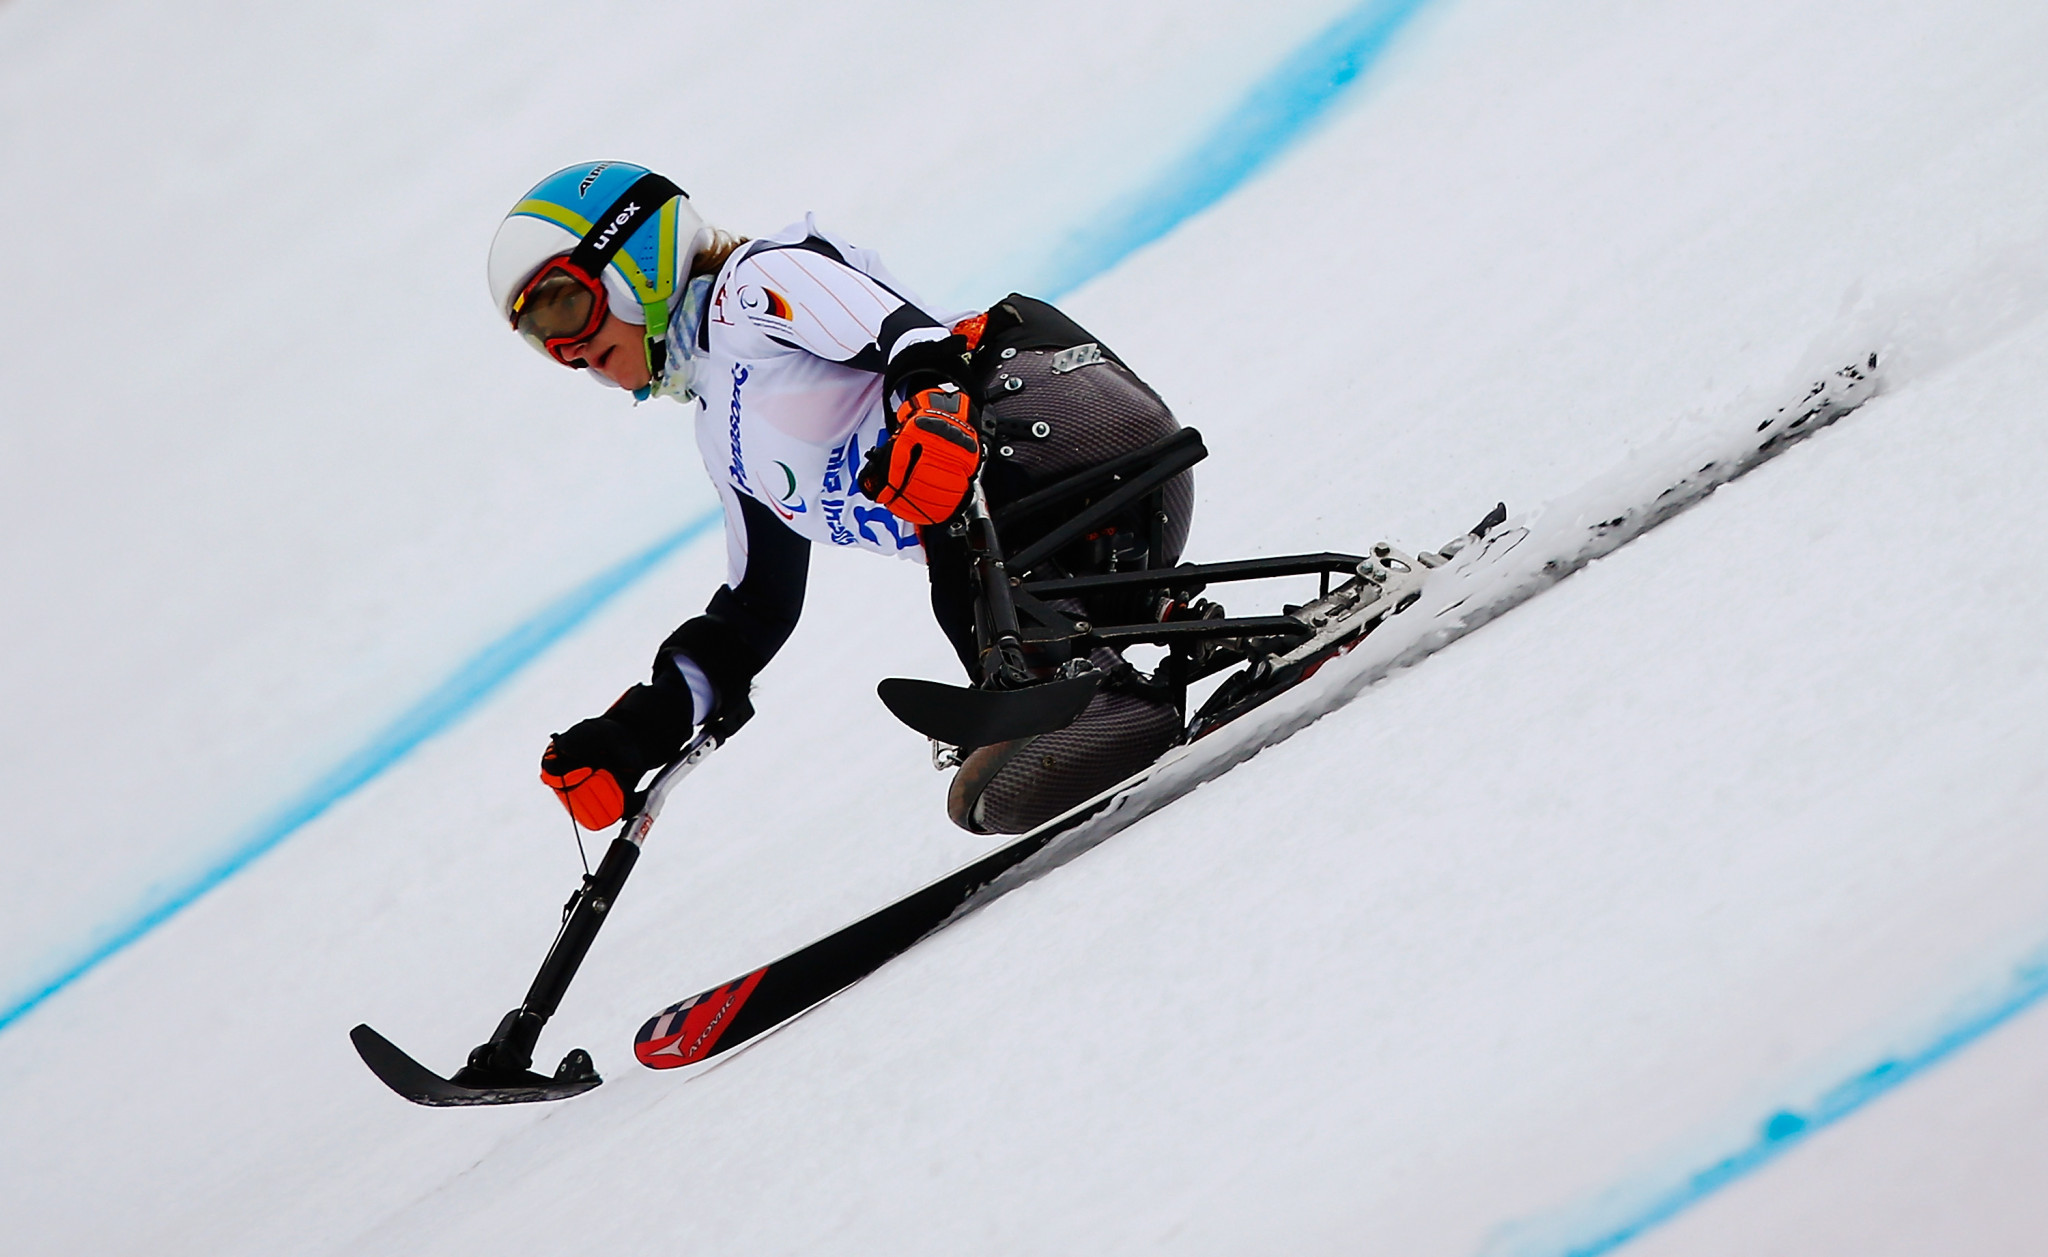 Forster slaloms to first win of season at World Para Alpine Skiing World Cup